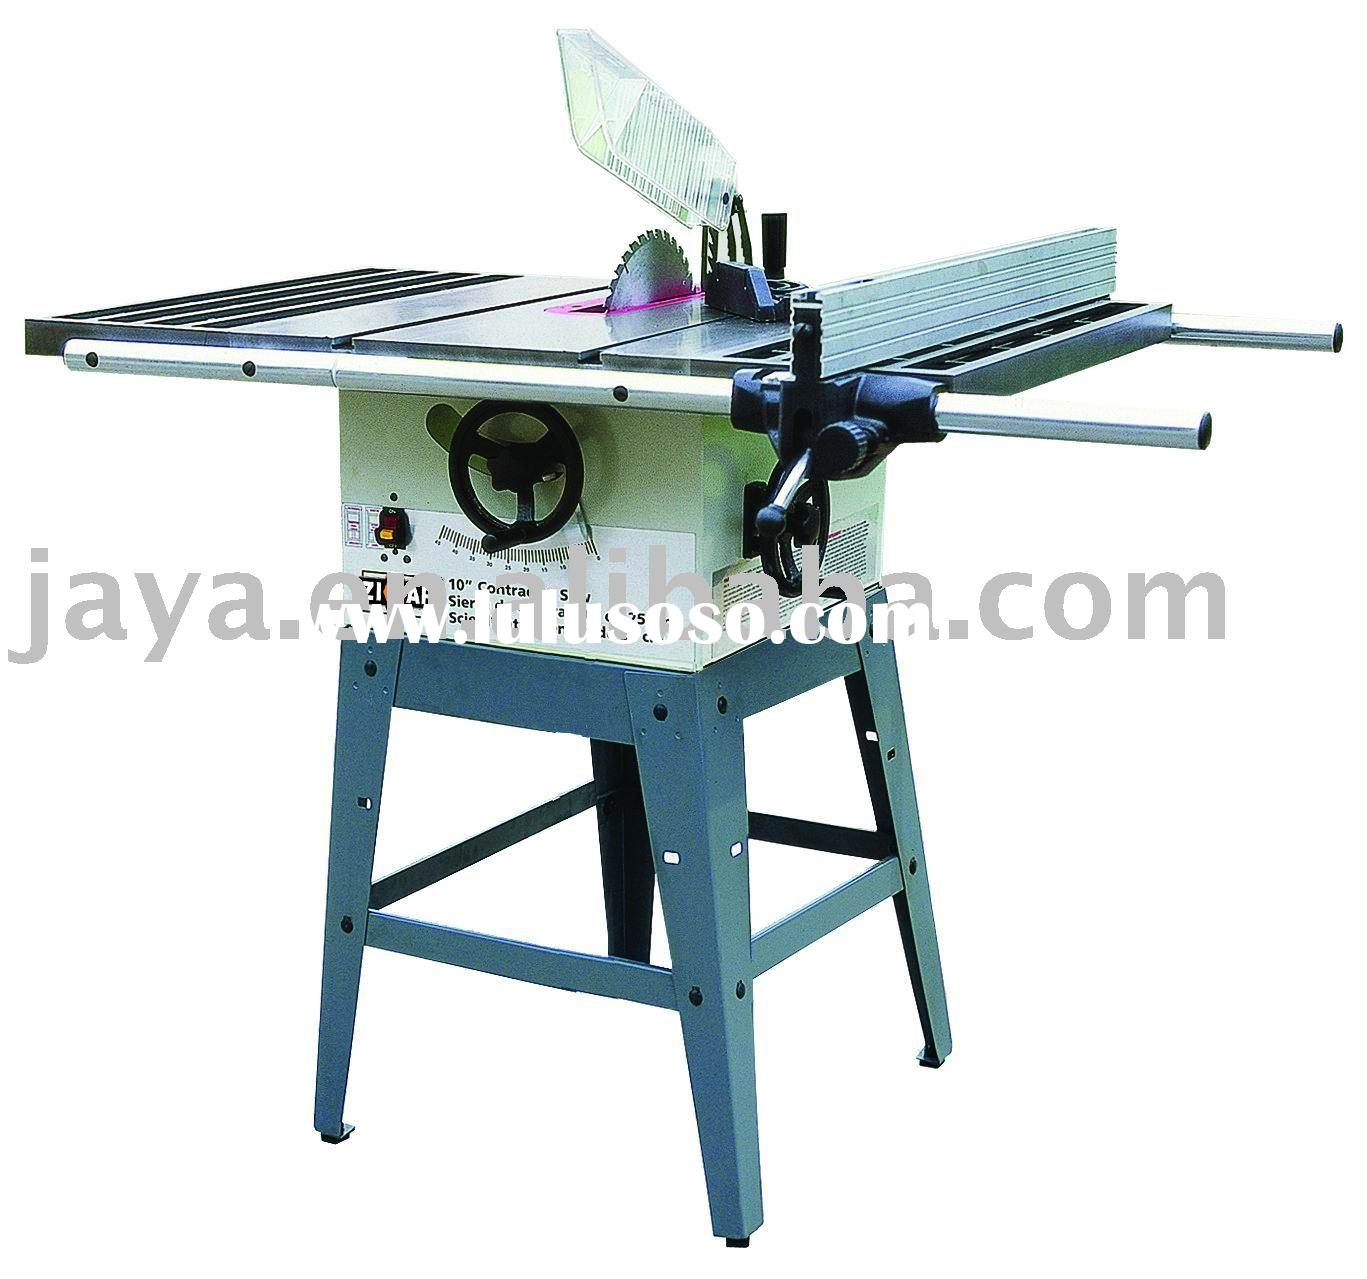 Woodworking Table Saw Woodworking Table Saw Manufacturers In Page 1